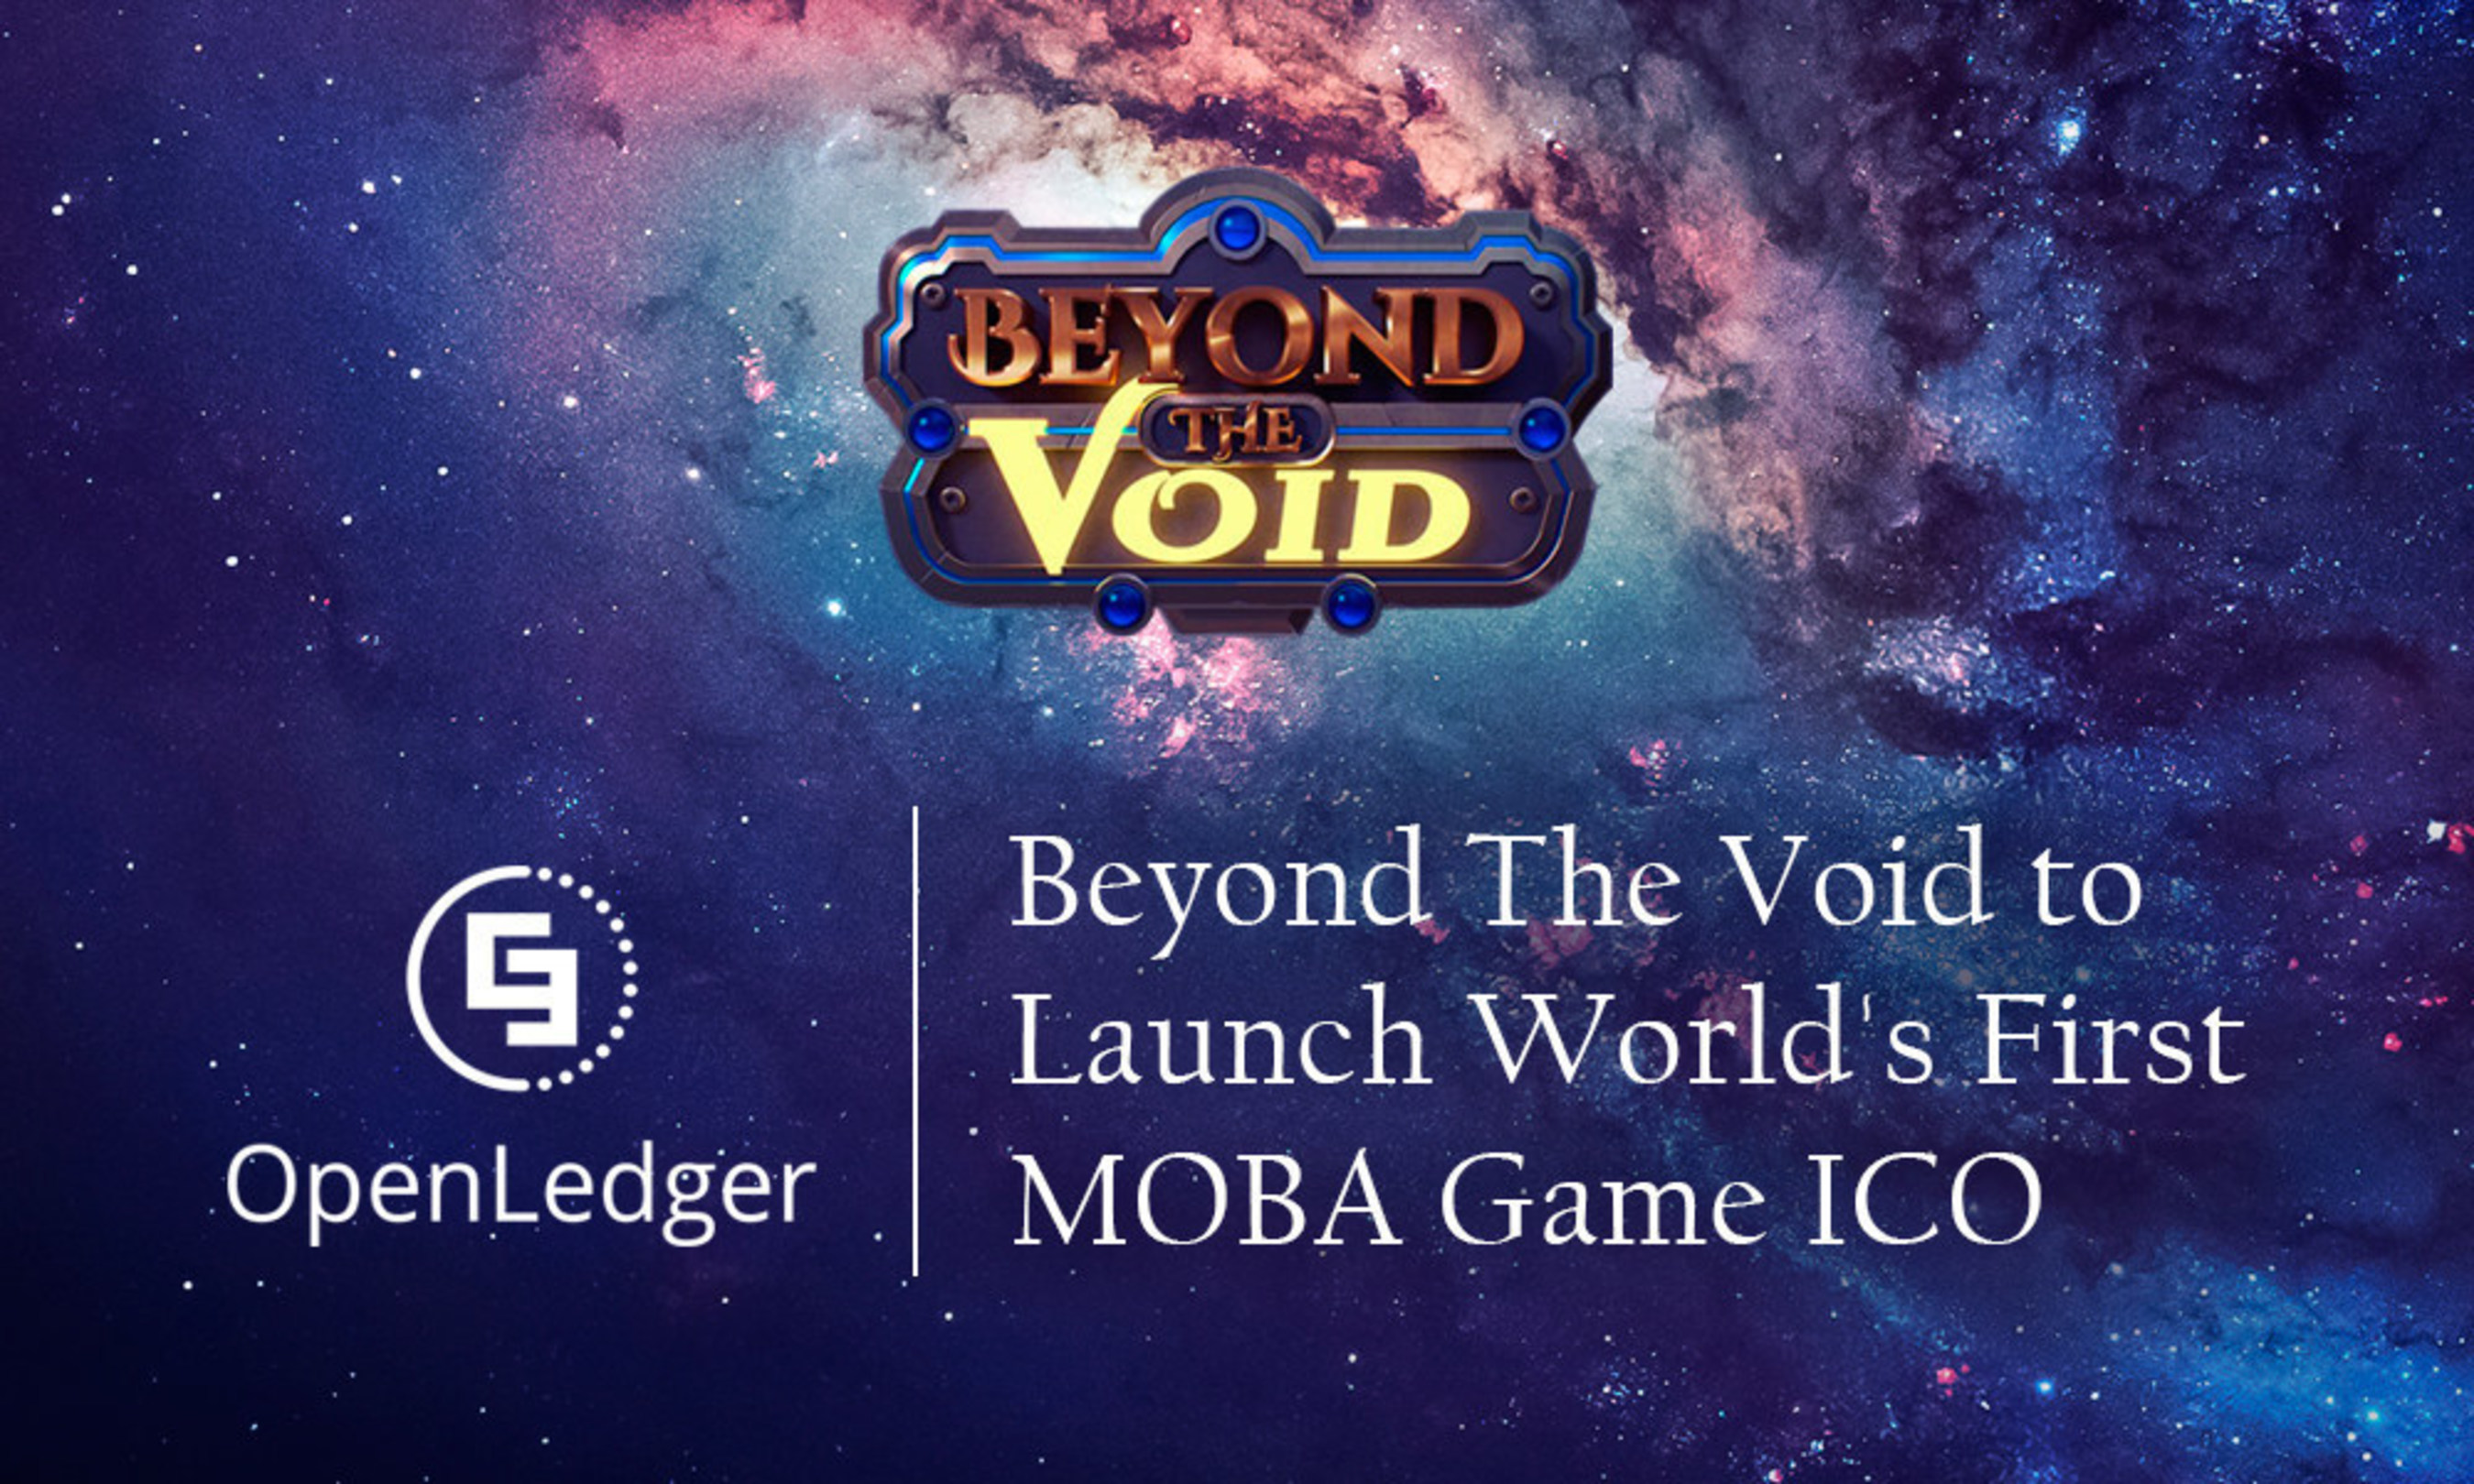 E-Sports Game Beyond the Void to Launch World's First MOBA Gaming ICO